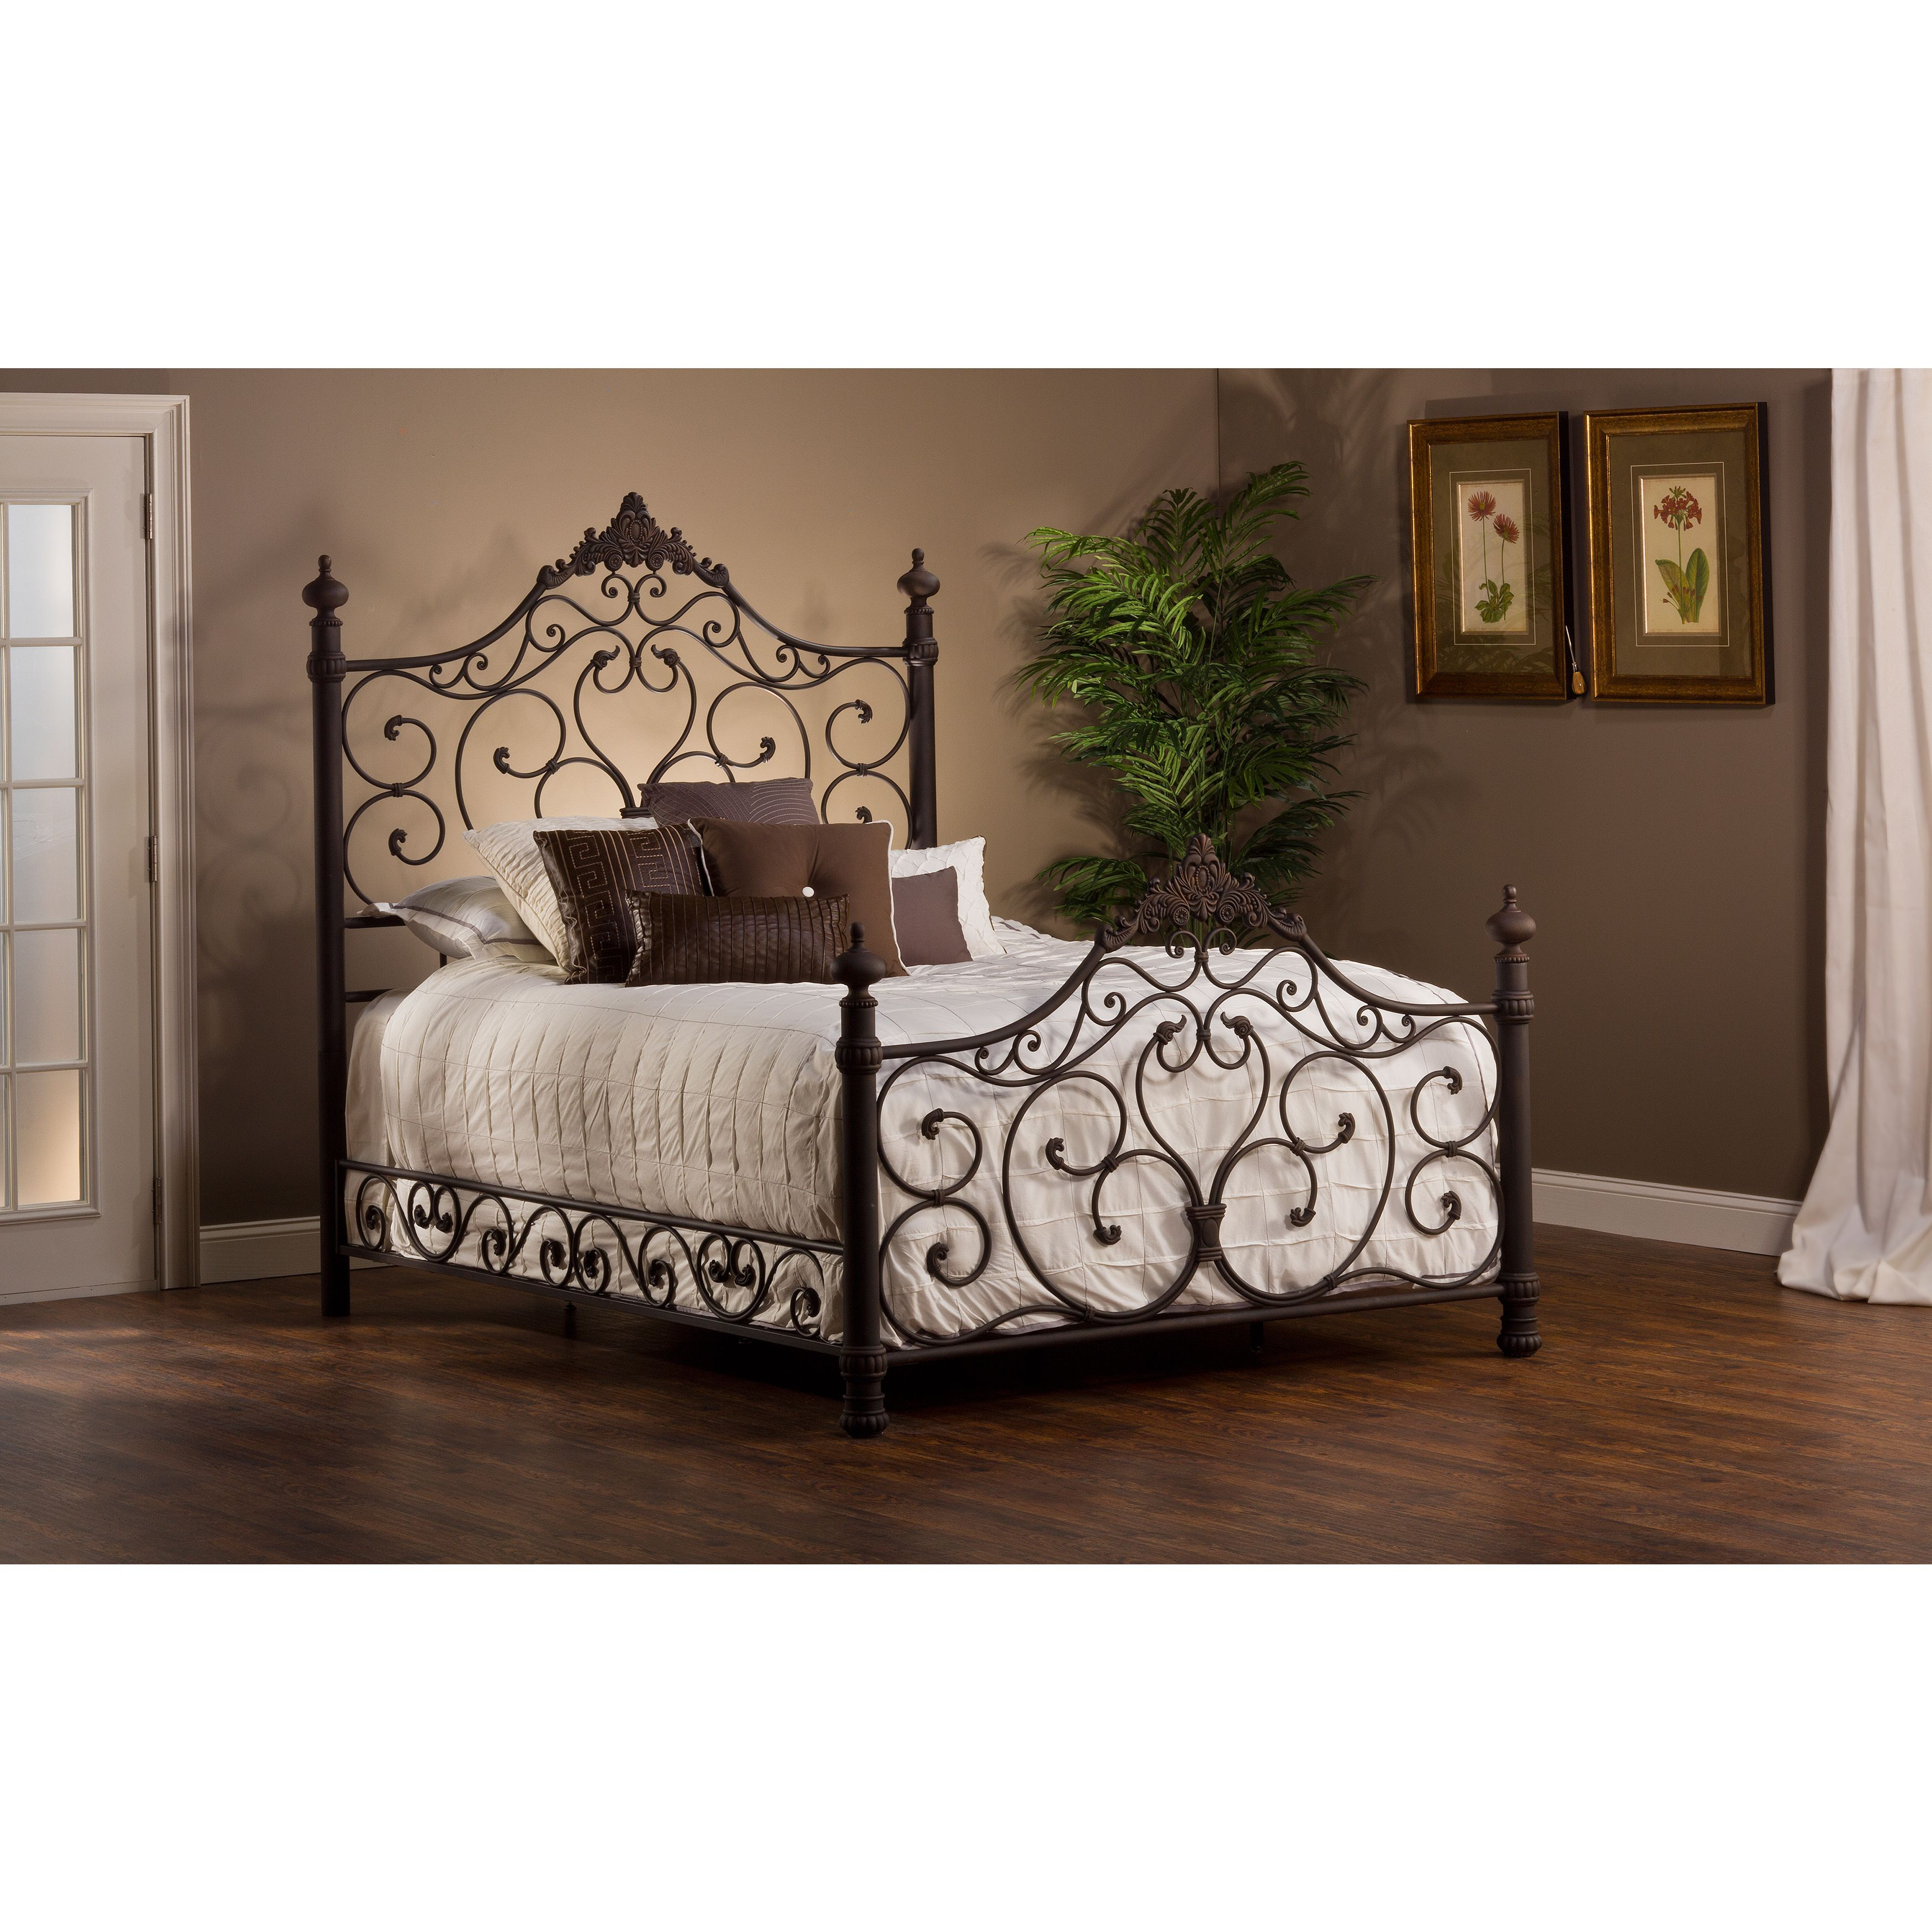 Baremore Antique Brown Bed Set | Recamara